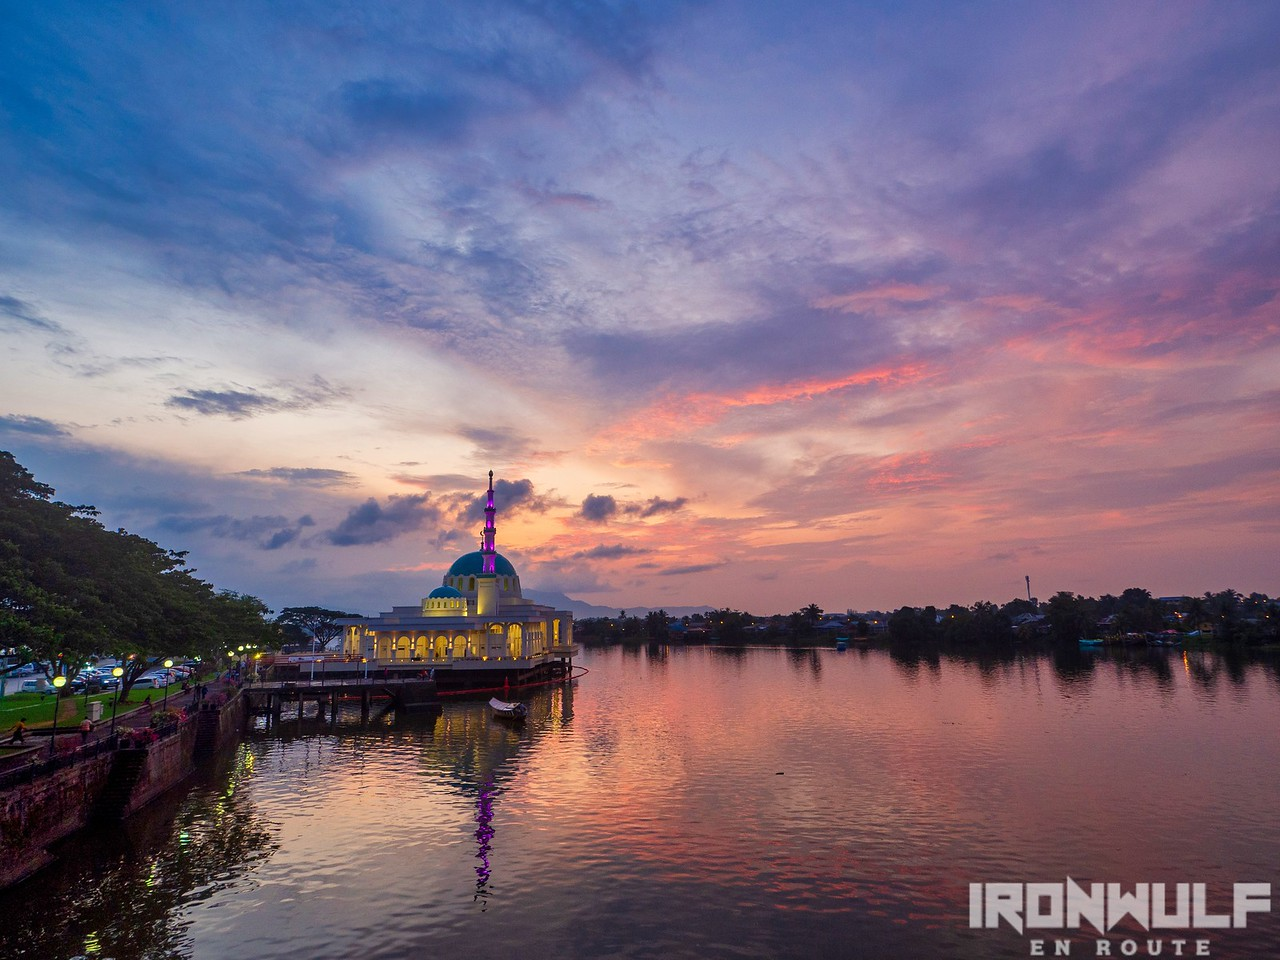 Sunset and the lit Indian Mosque over Sarawak river